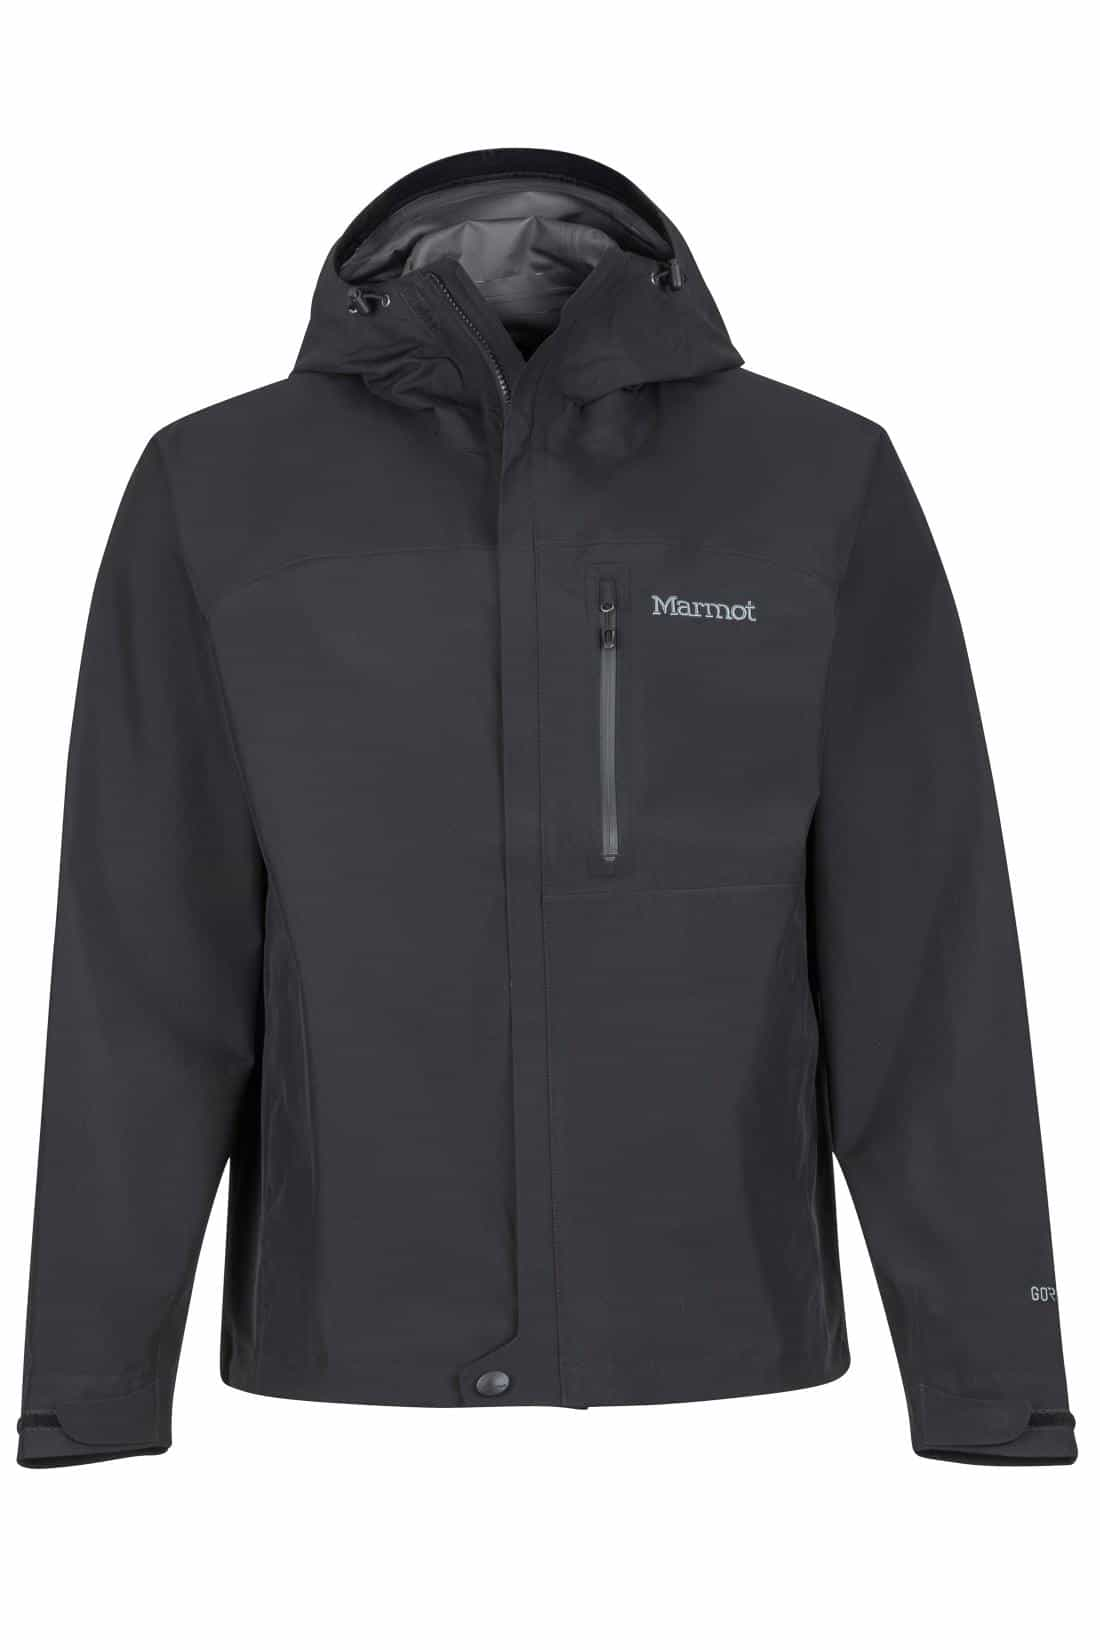 Marmot-Minimalist Jacket - Men's 2019